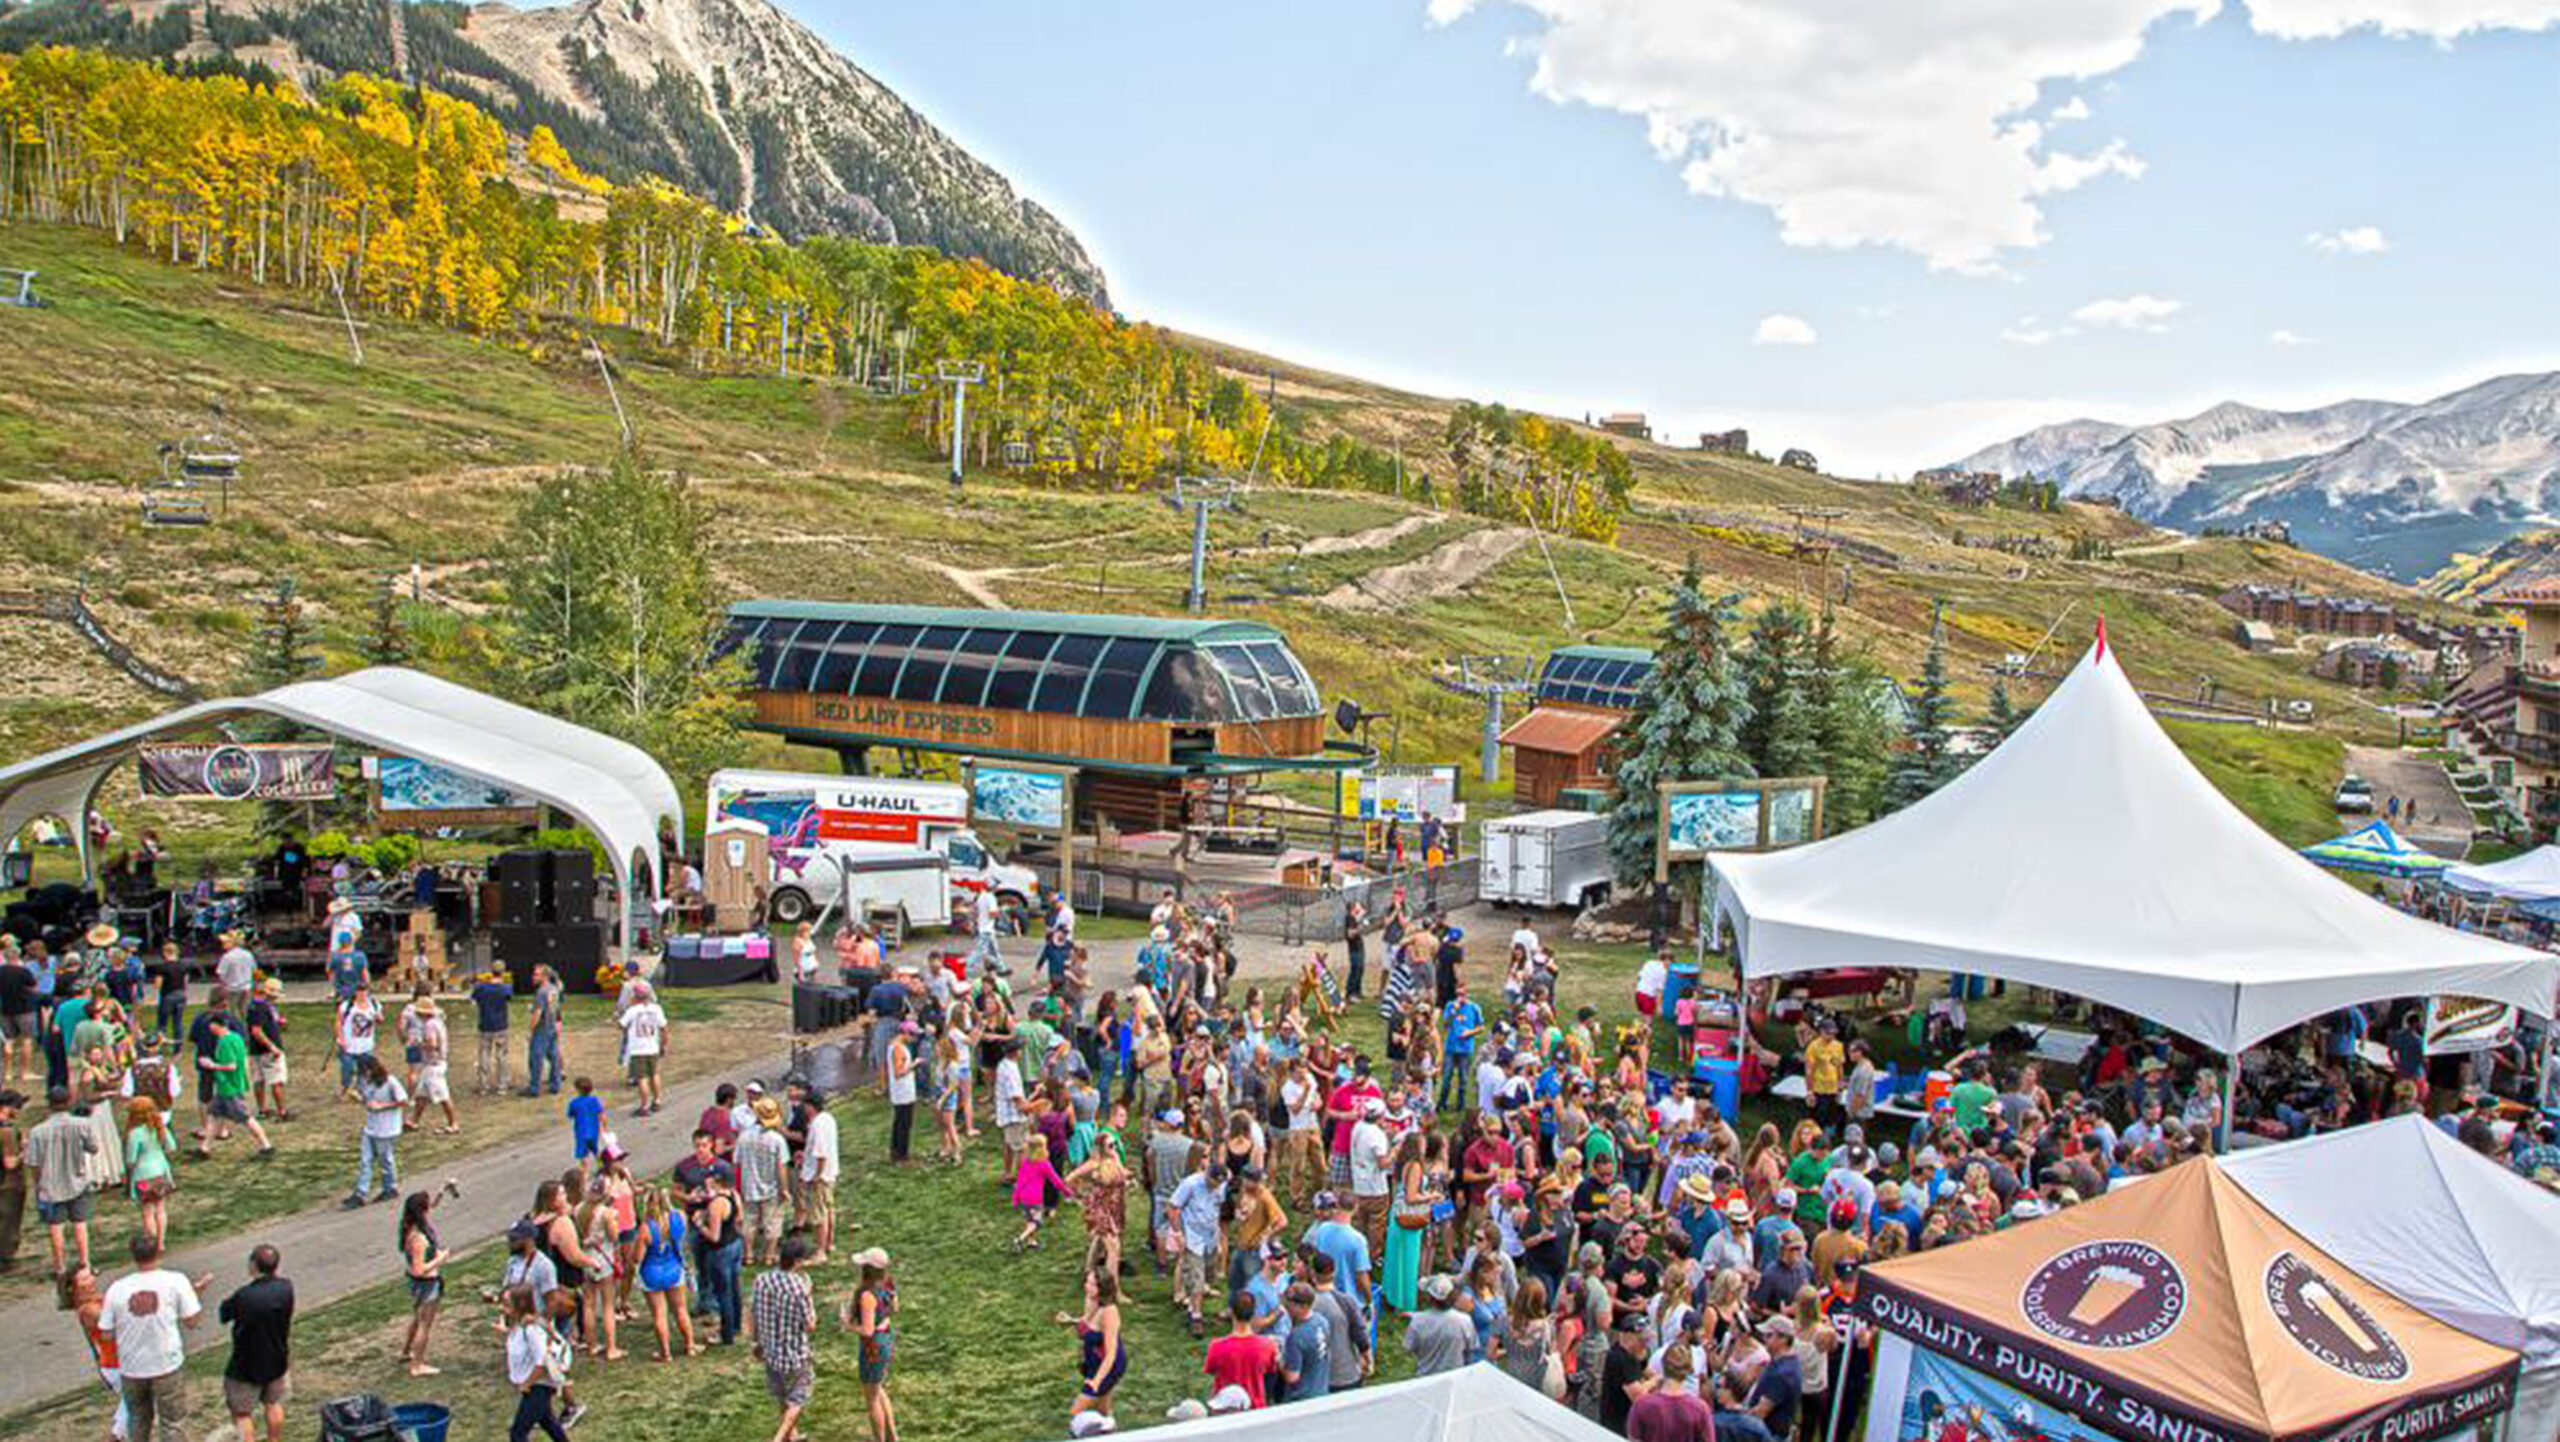 Crested Butte Chili and Beer Fest